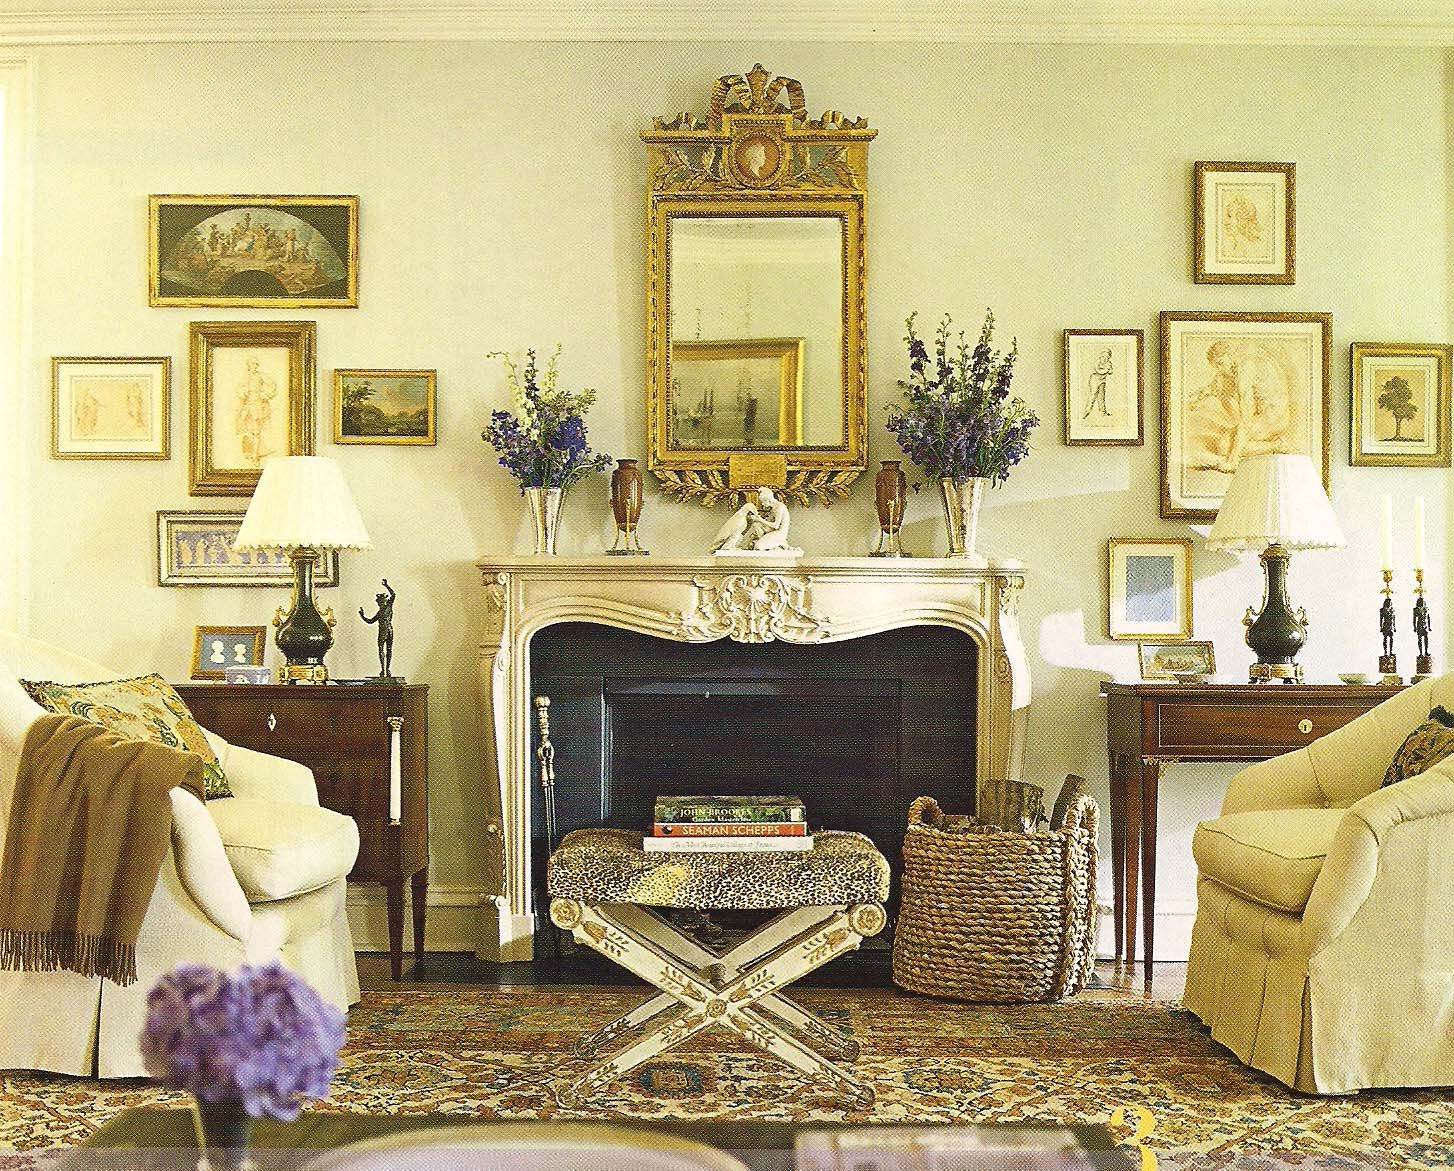 symmetry in art | For the Home | Pinterest | Interiors, Southern ...